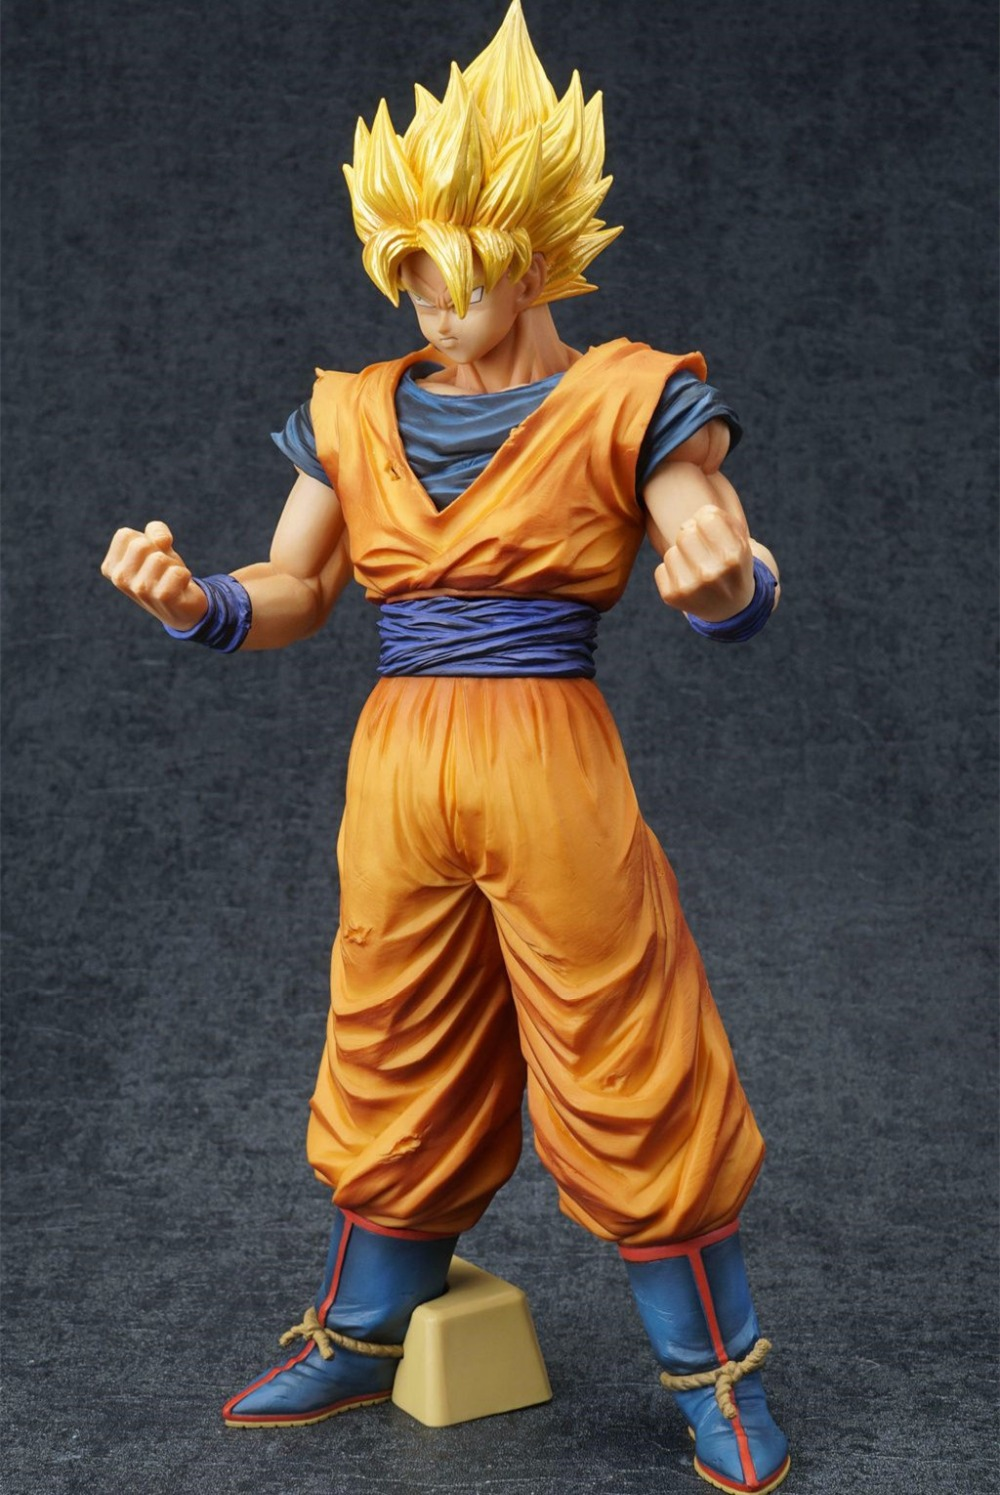 Anime Dragon Ball Z ROS Son Goku PVC Action Figure Collectible Model Kids Toys Doll 32CM Large Size Figure Toy 7cm large size jp hand done animation crystal dragon ball set genuine model toy gift action figures anime toys kids